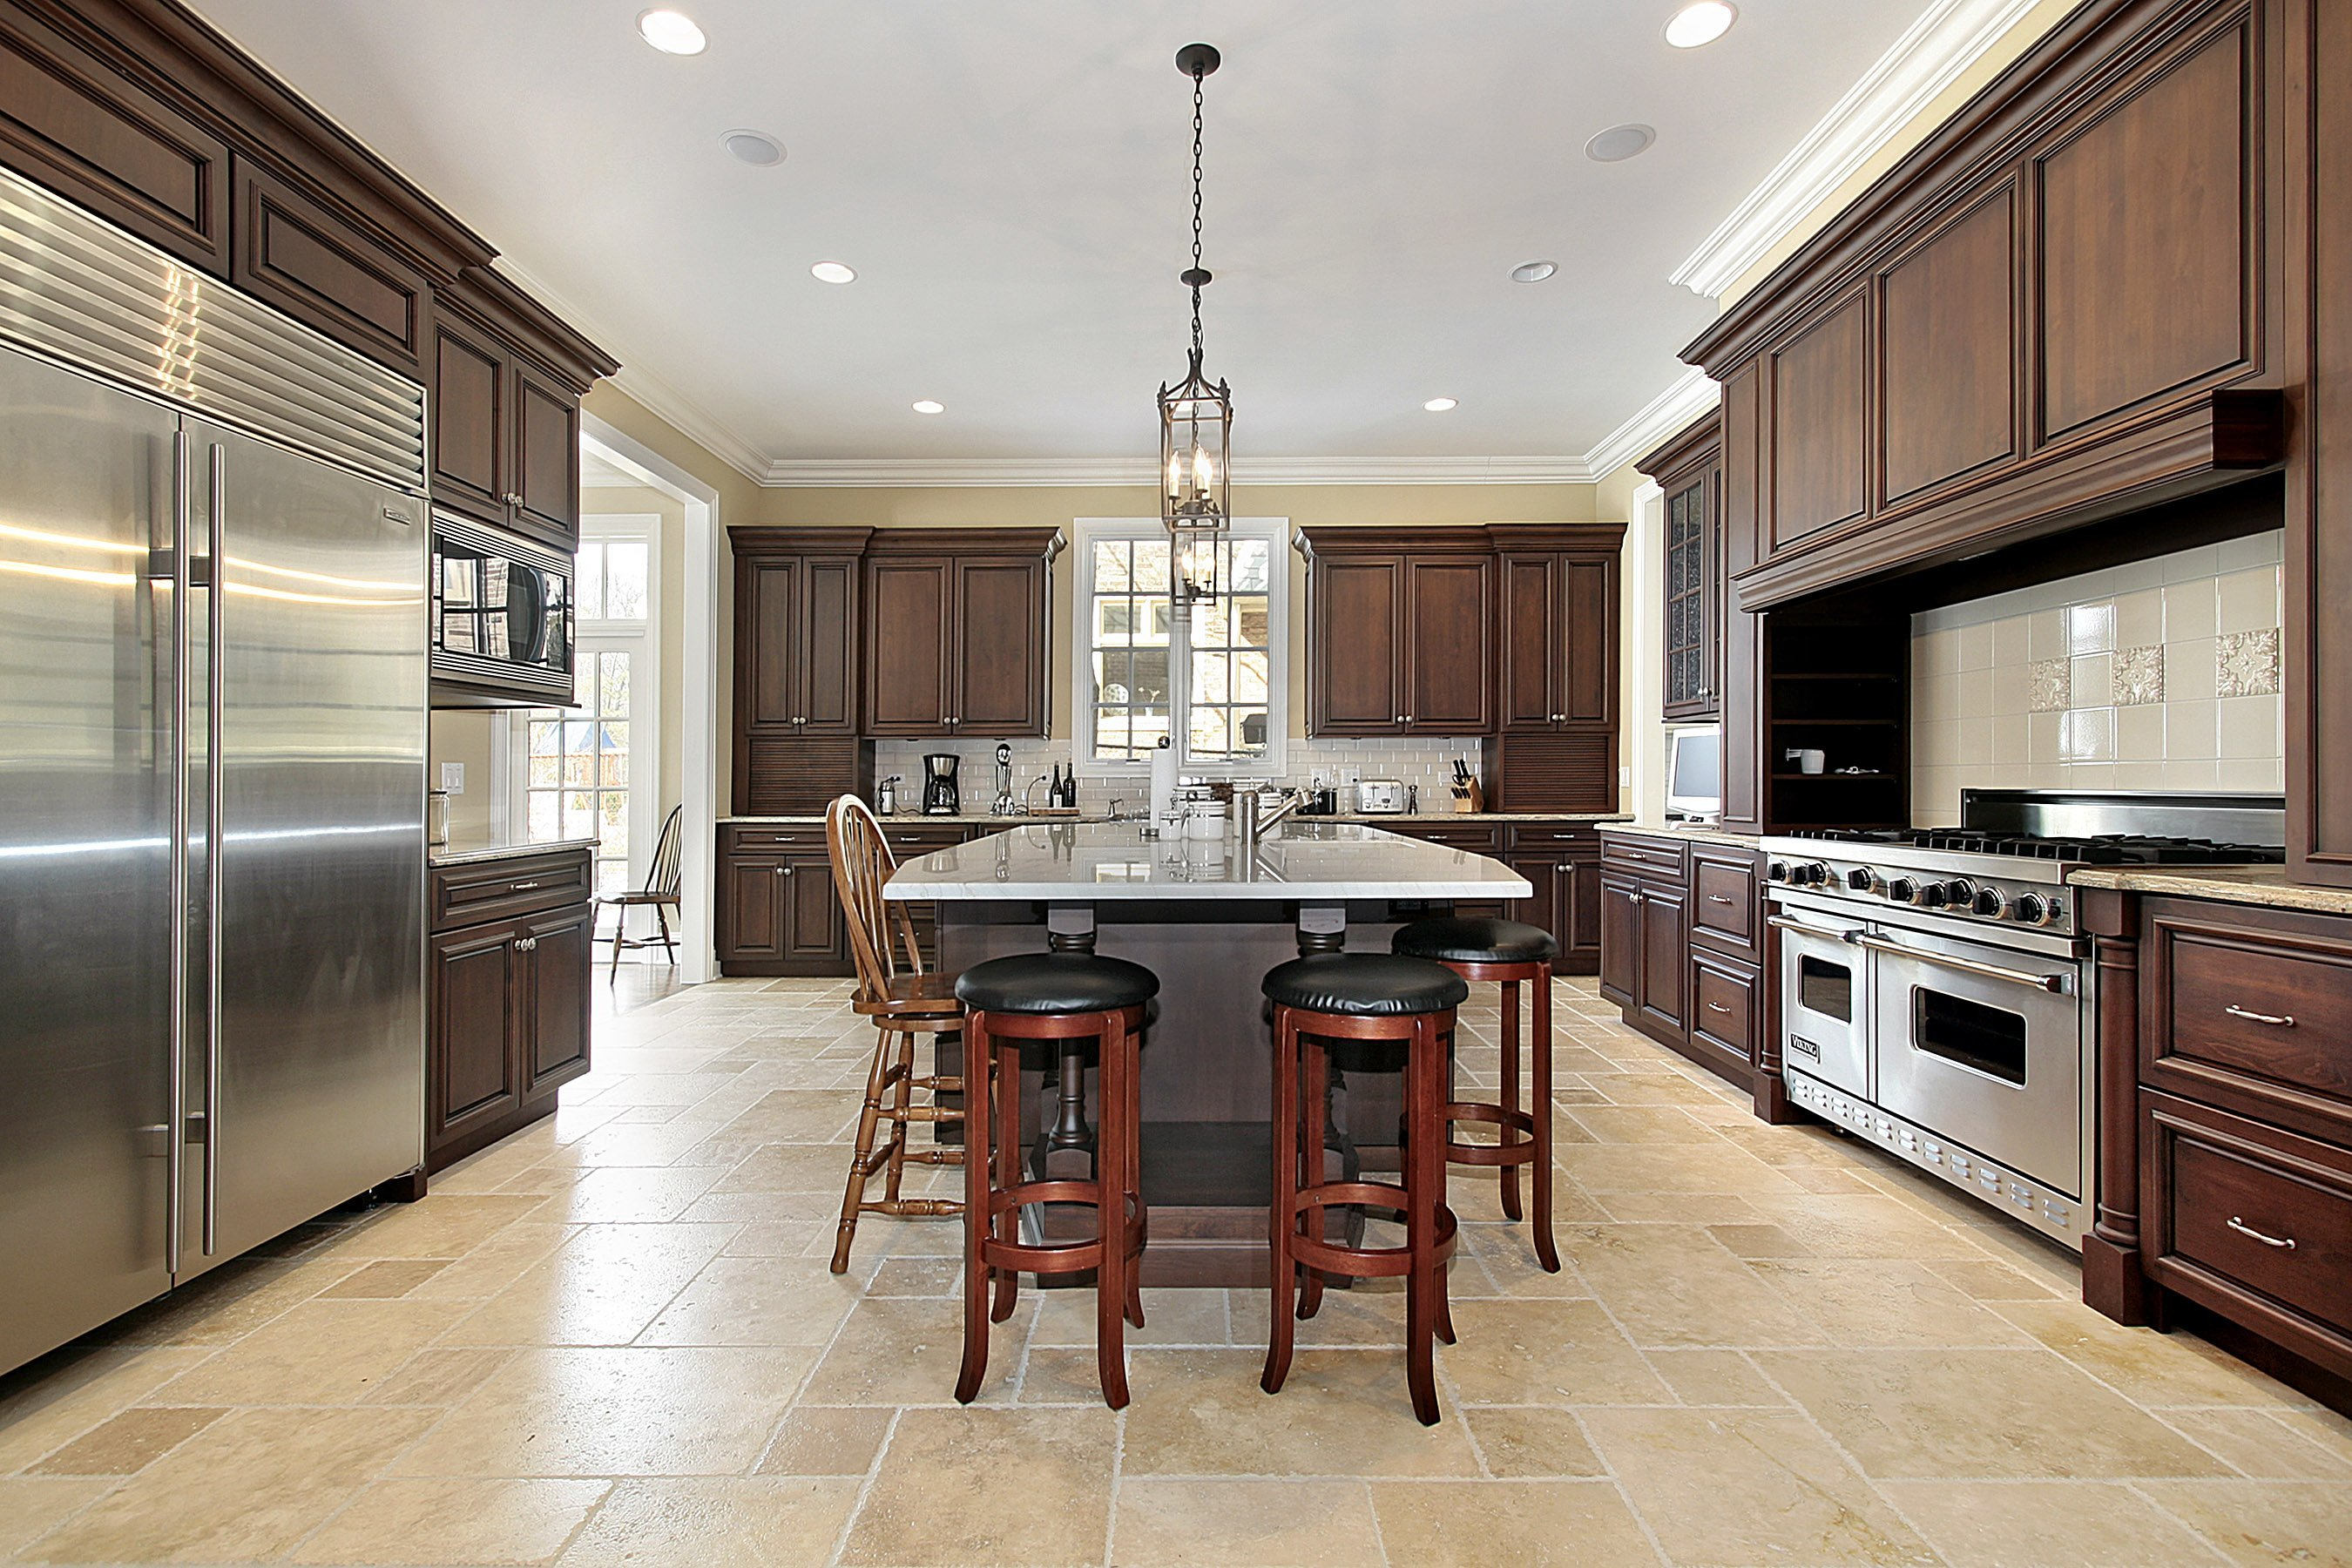 Limestone Tile Pros and Cons - Learning CenterLearning Center